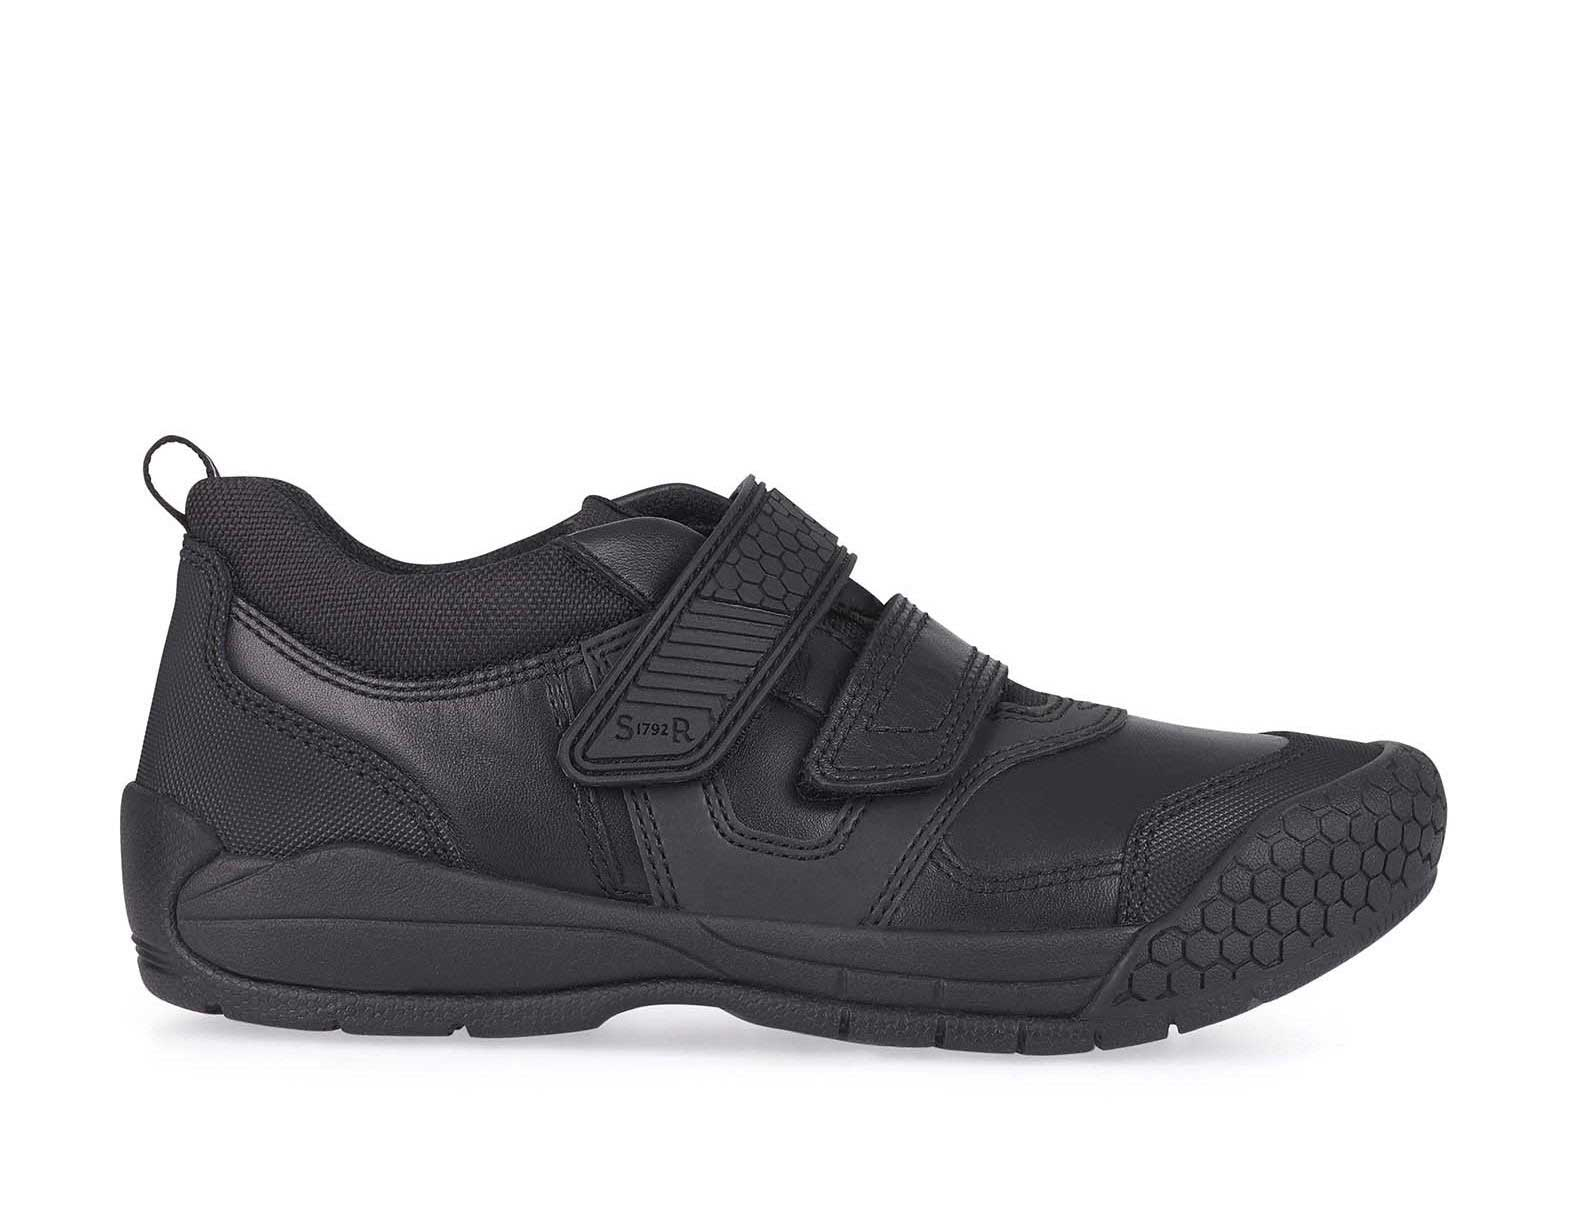 Size 1 School Shoes for Girls & Boys